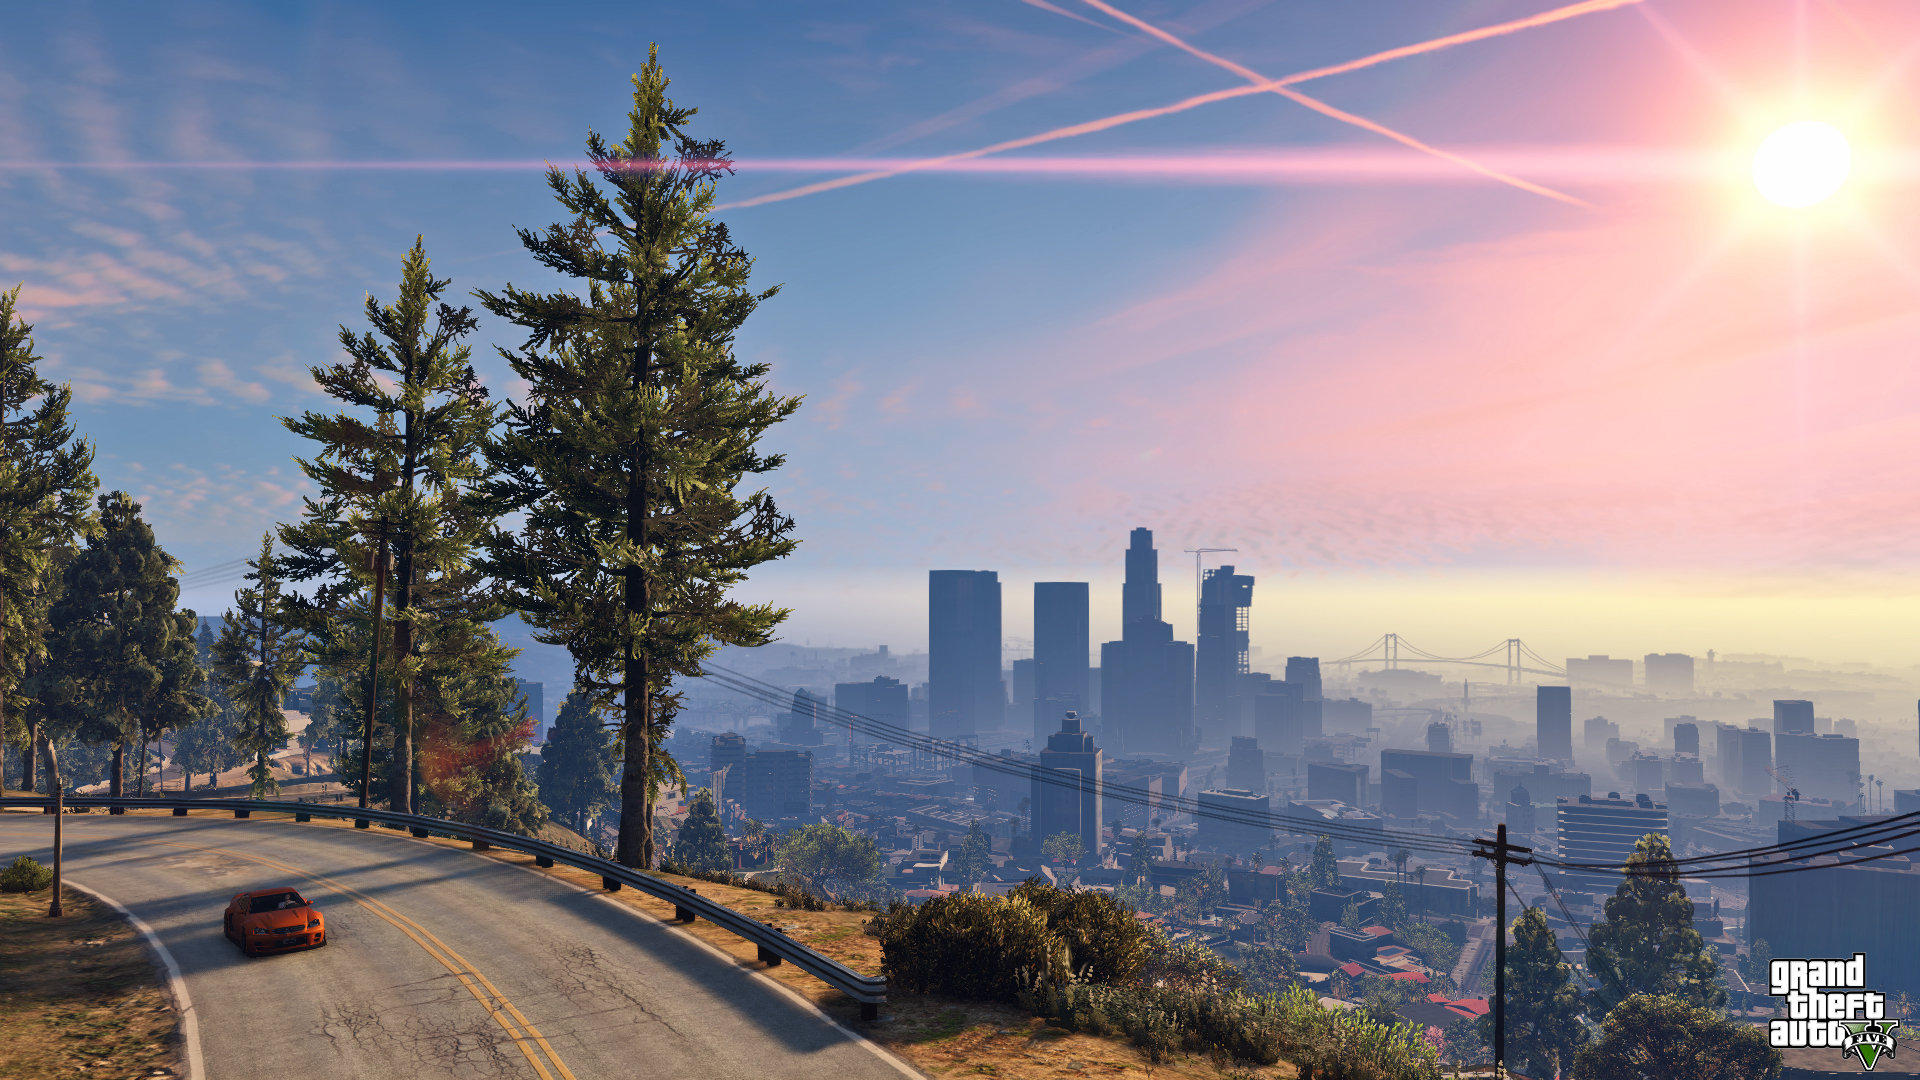 grand-theft-auto-v-screen-03-ps4-us-10no